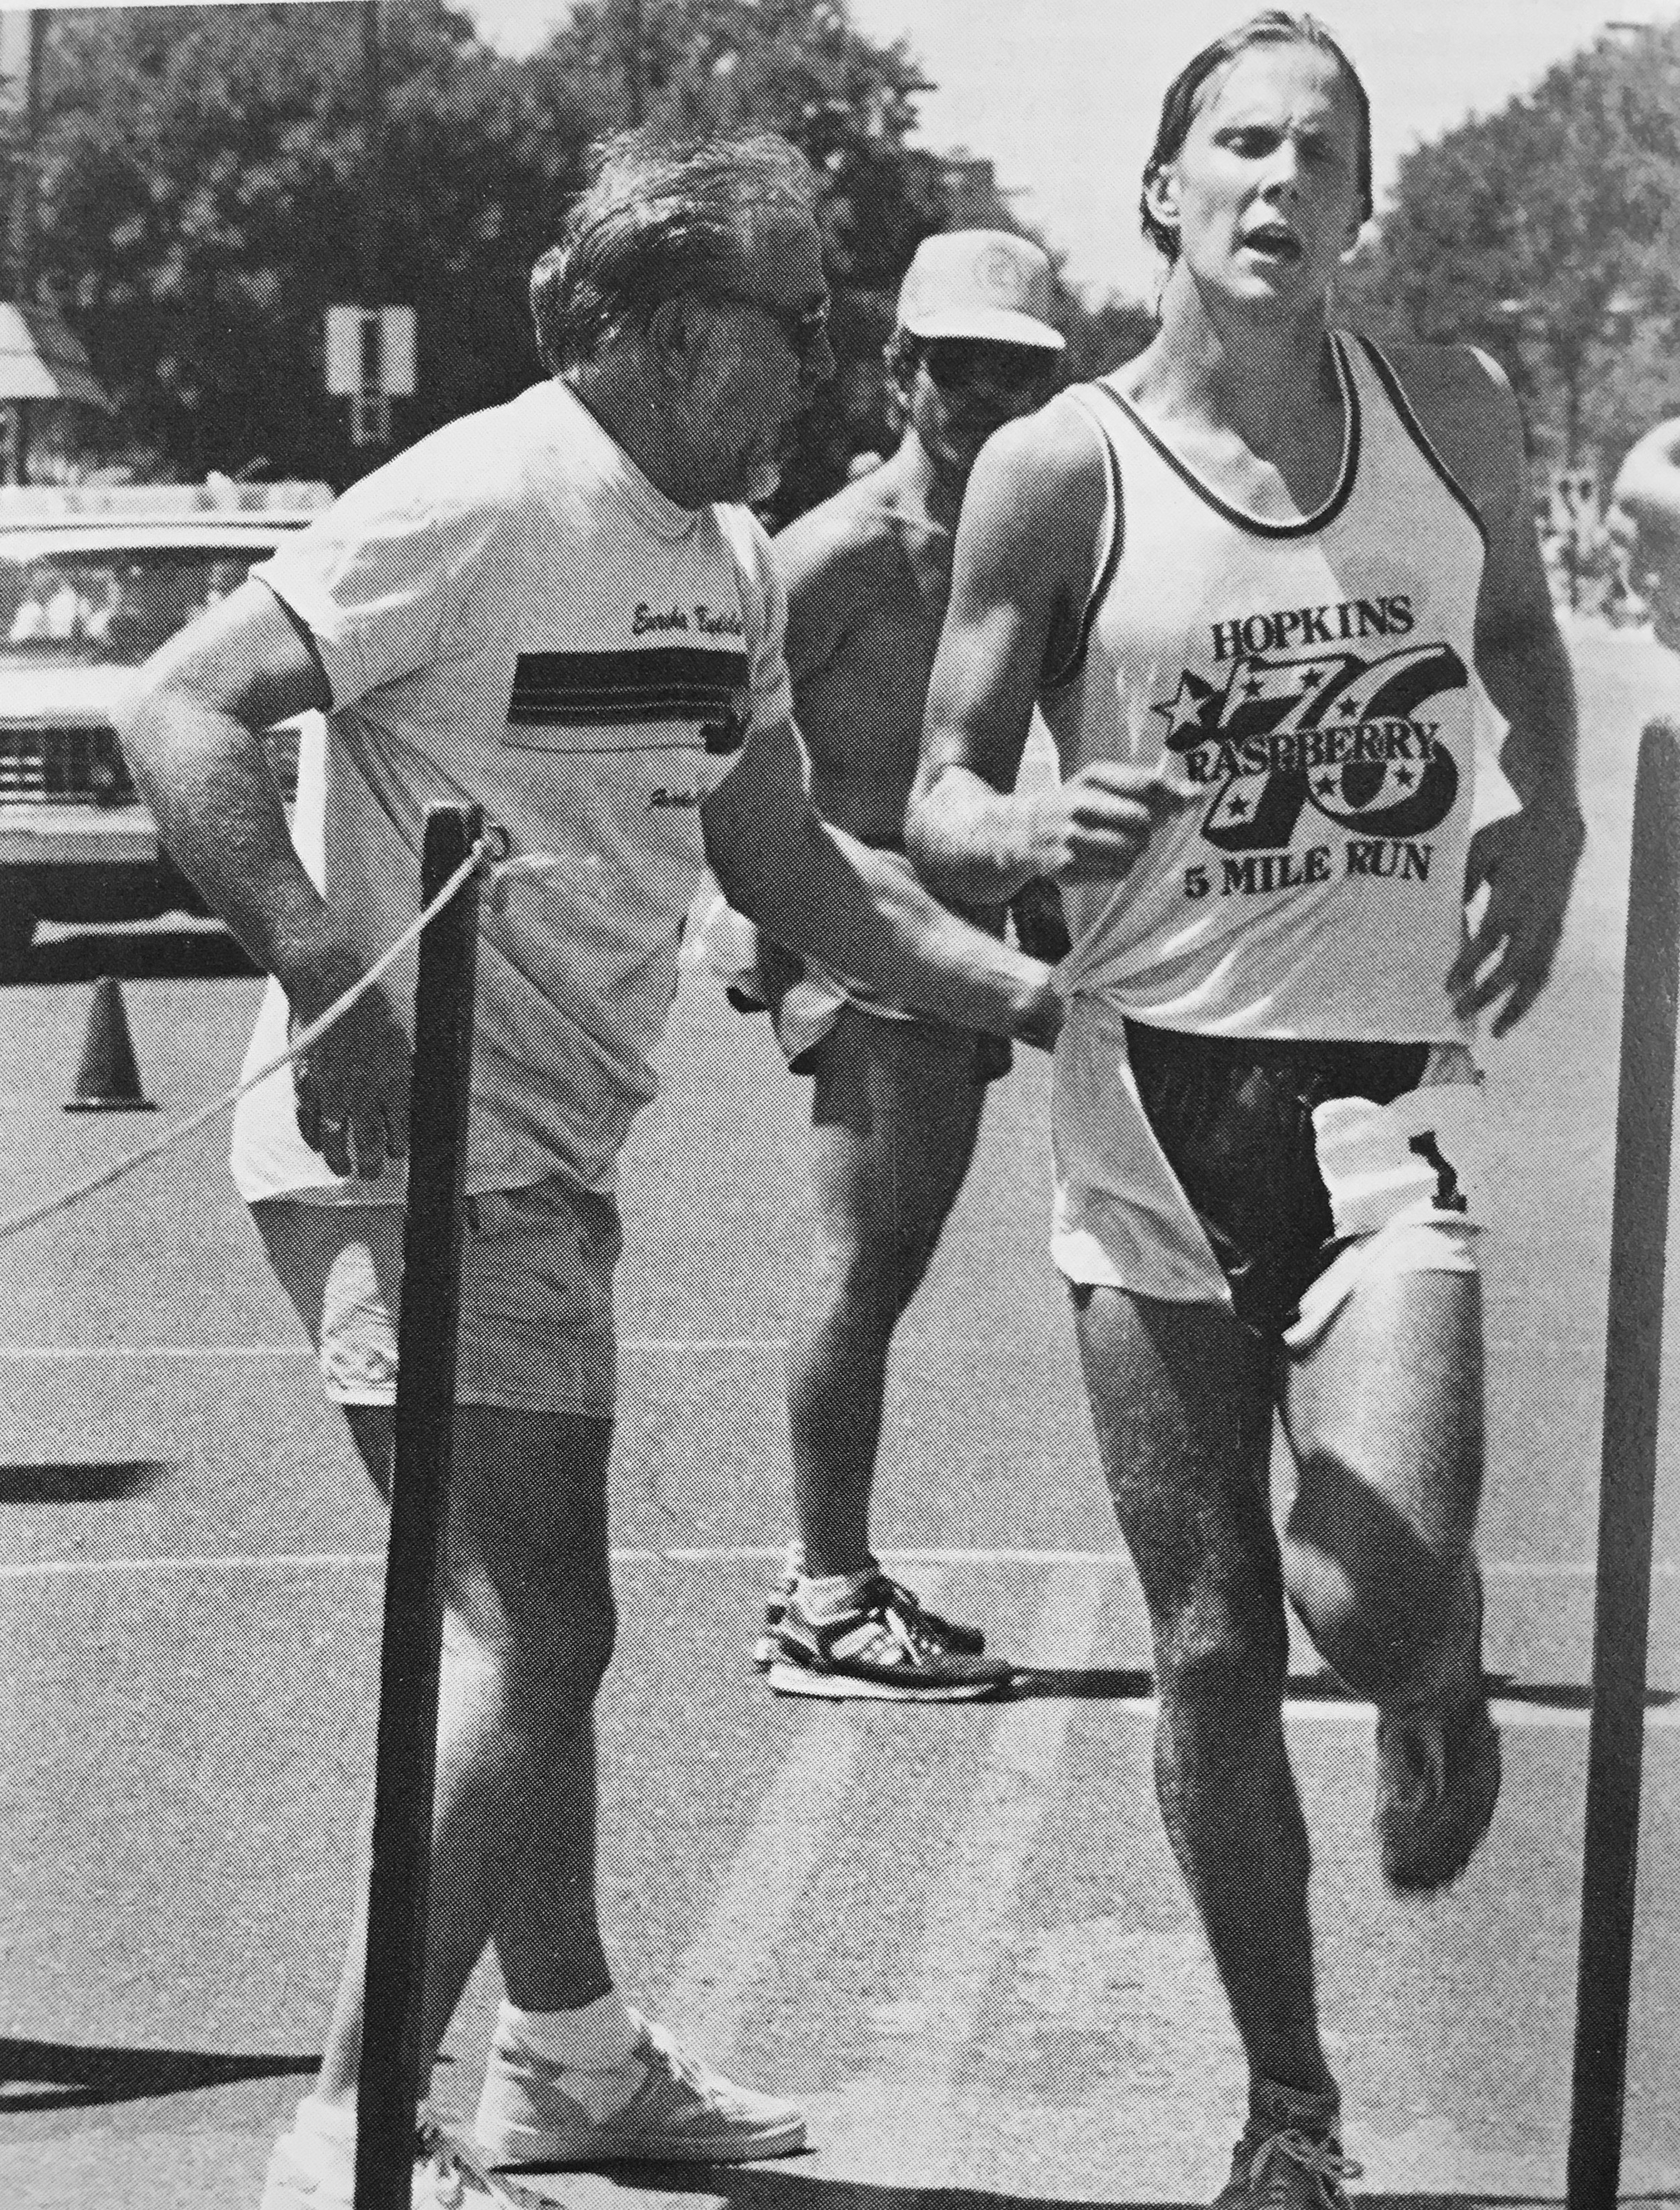 Olympian Bob Kempainen sporting his 1976 Hopkins Raspberry Run tank while winning the 5-mile in 1987. (Photo by Dennis Hahn)